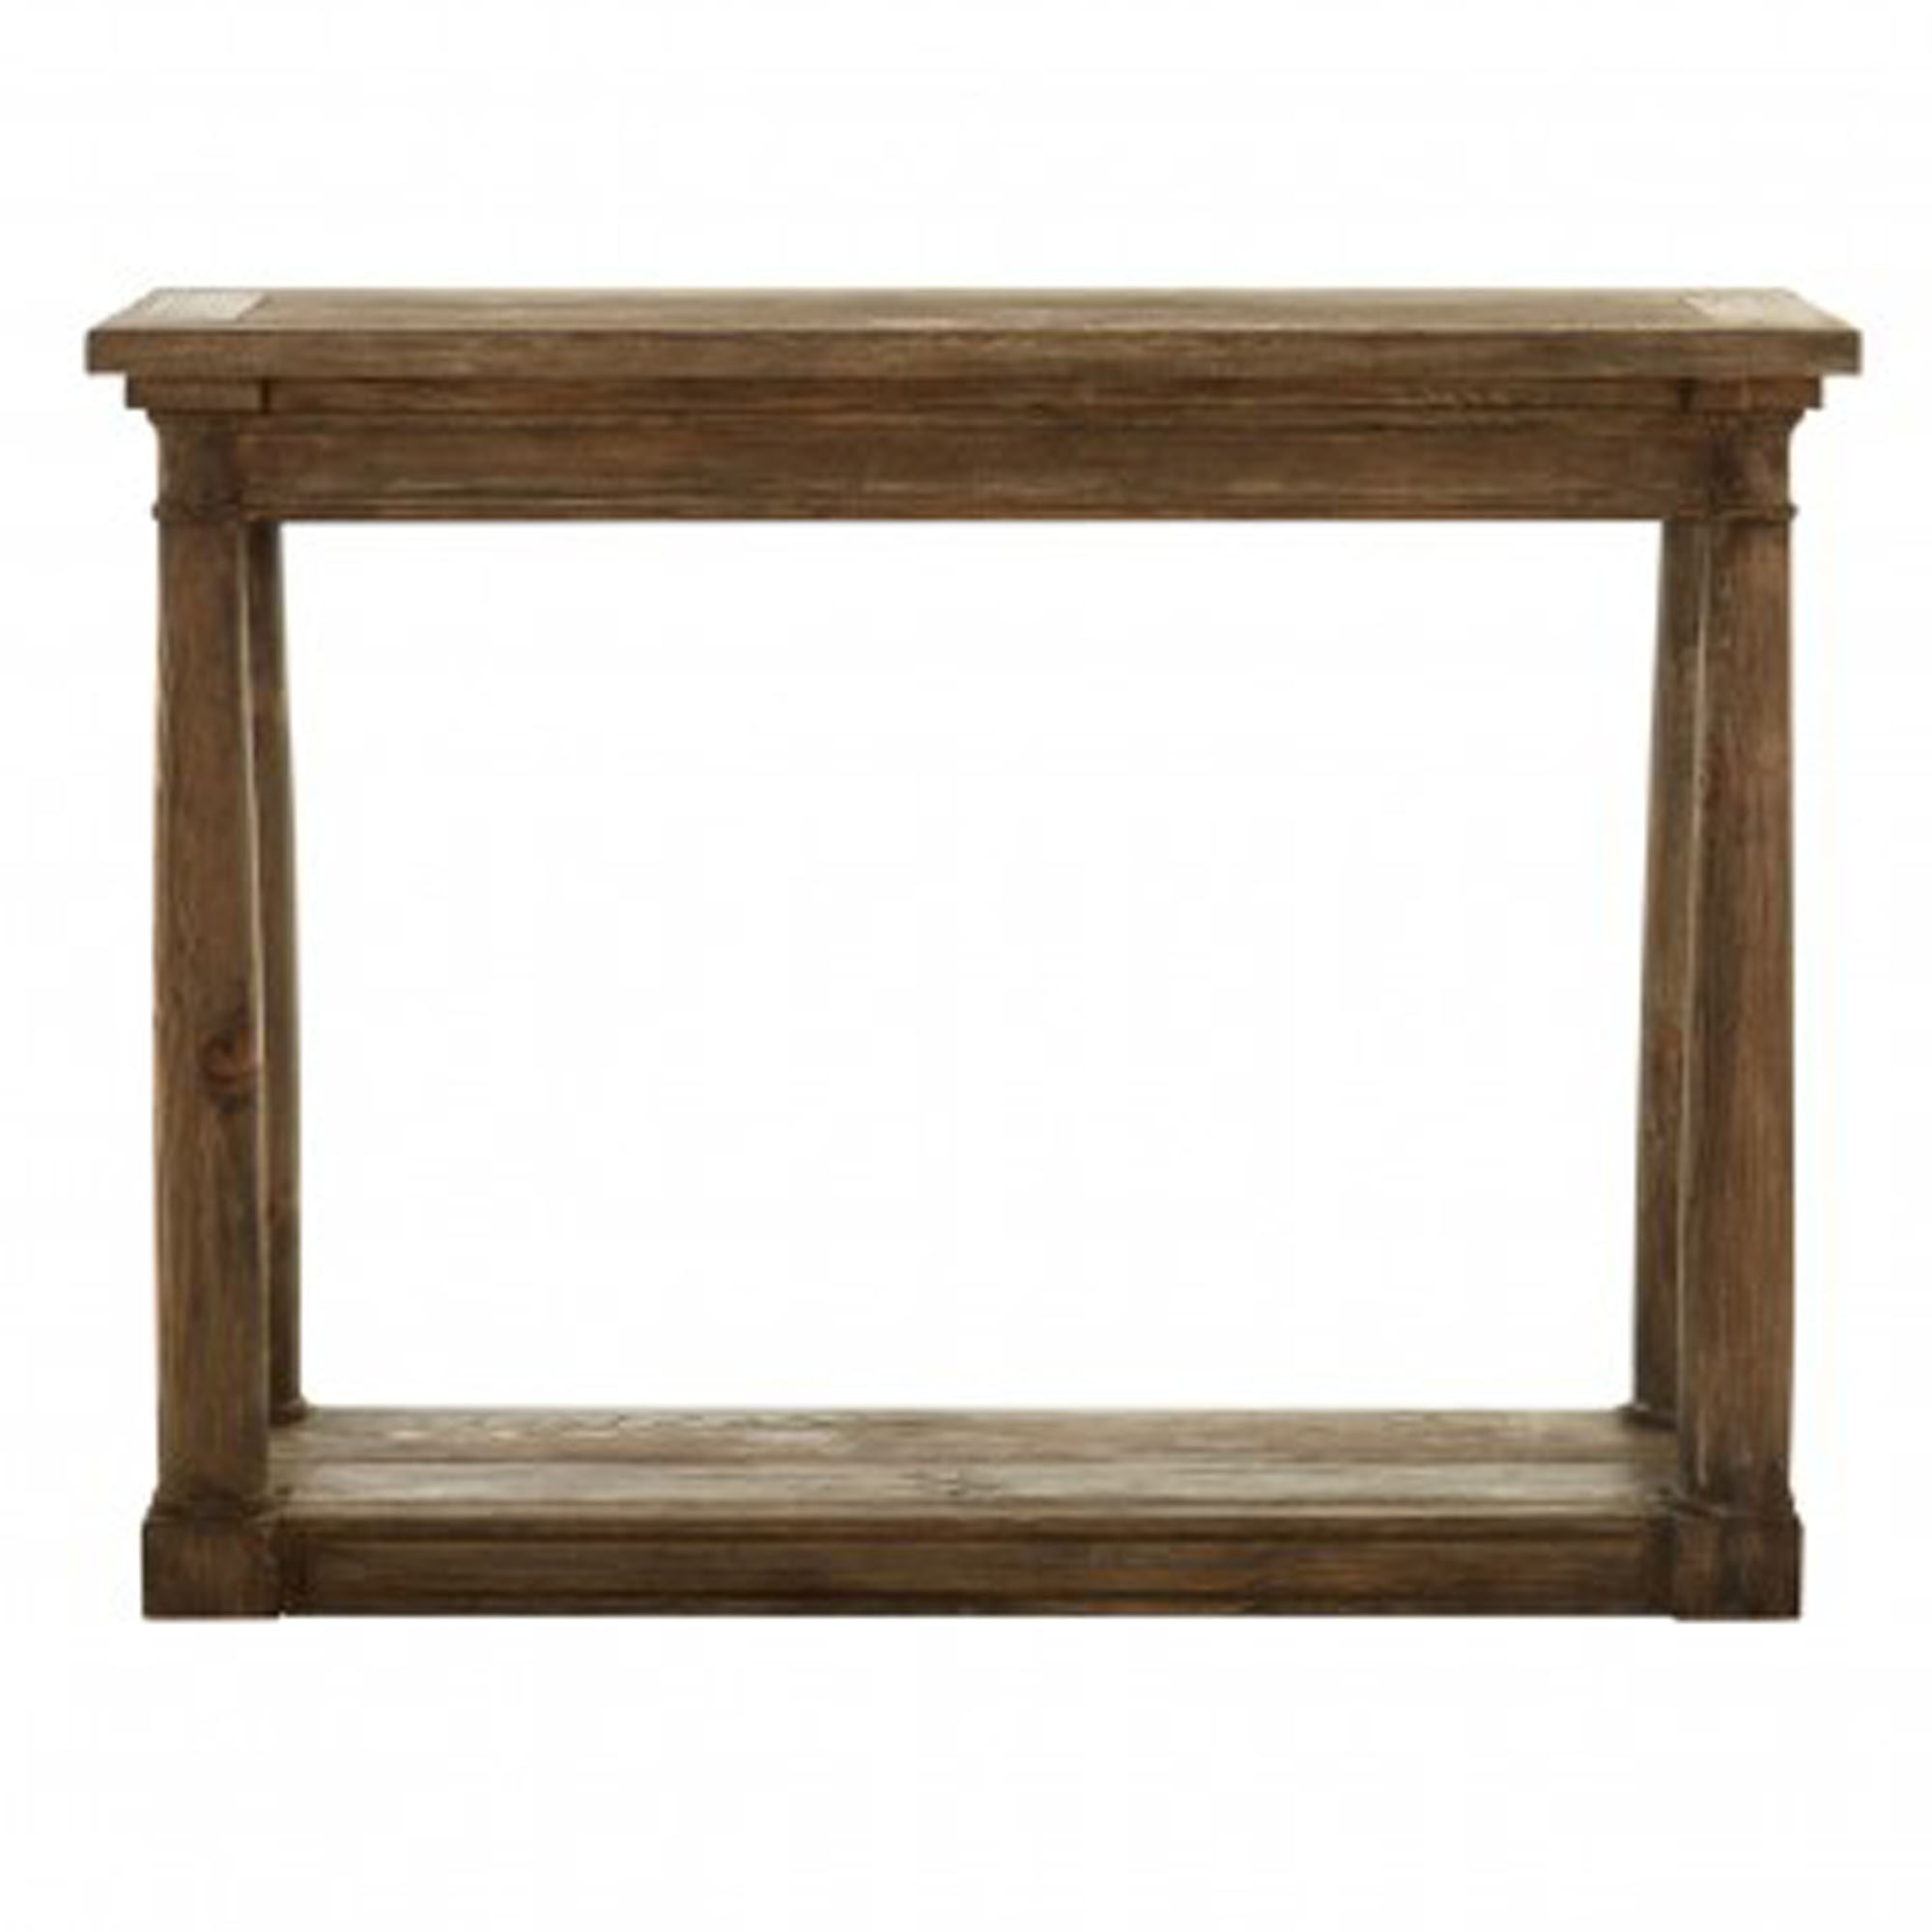 buy online fefef e80bb Lovina Rustic Console Table